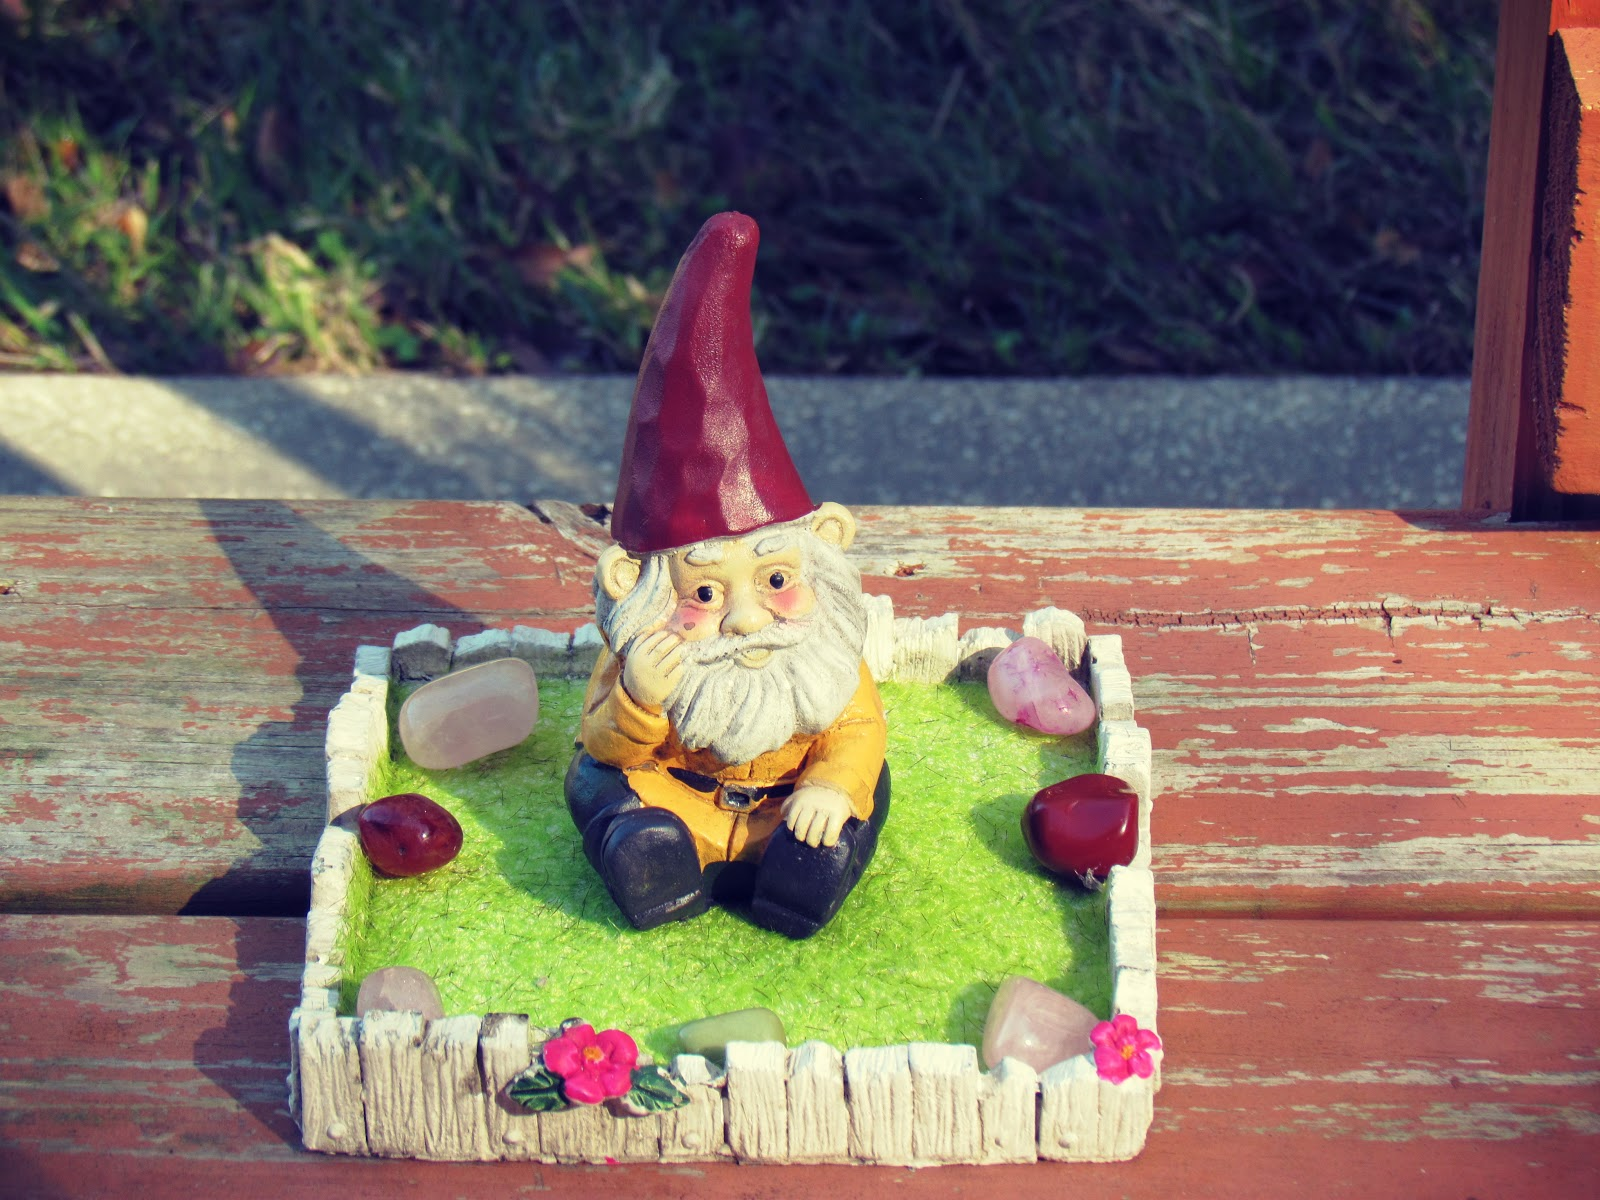 A gnome zen garden sitting on the back porch in a natural setting in sunny, tropical Florida